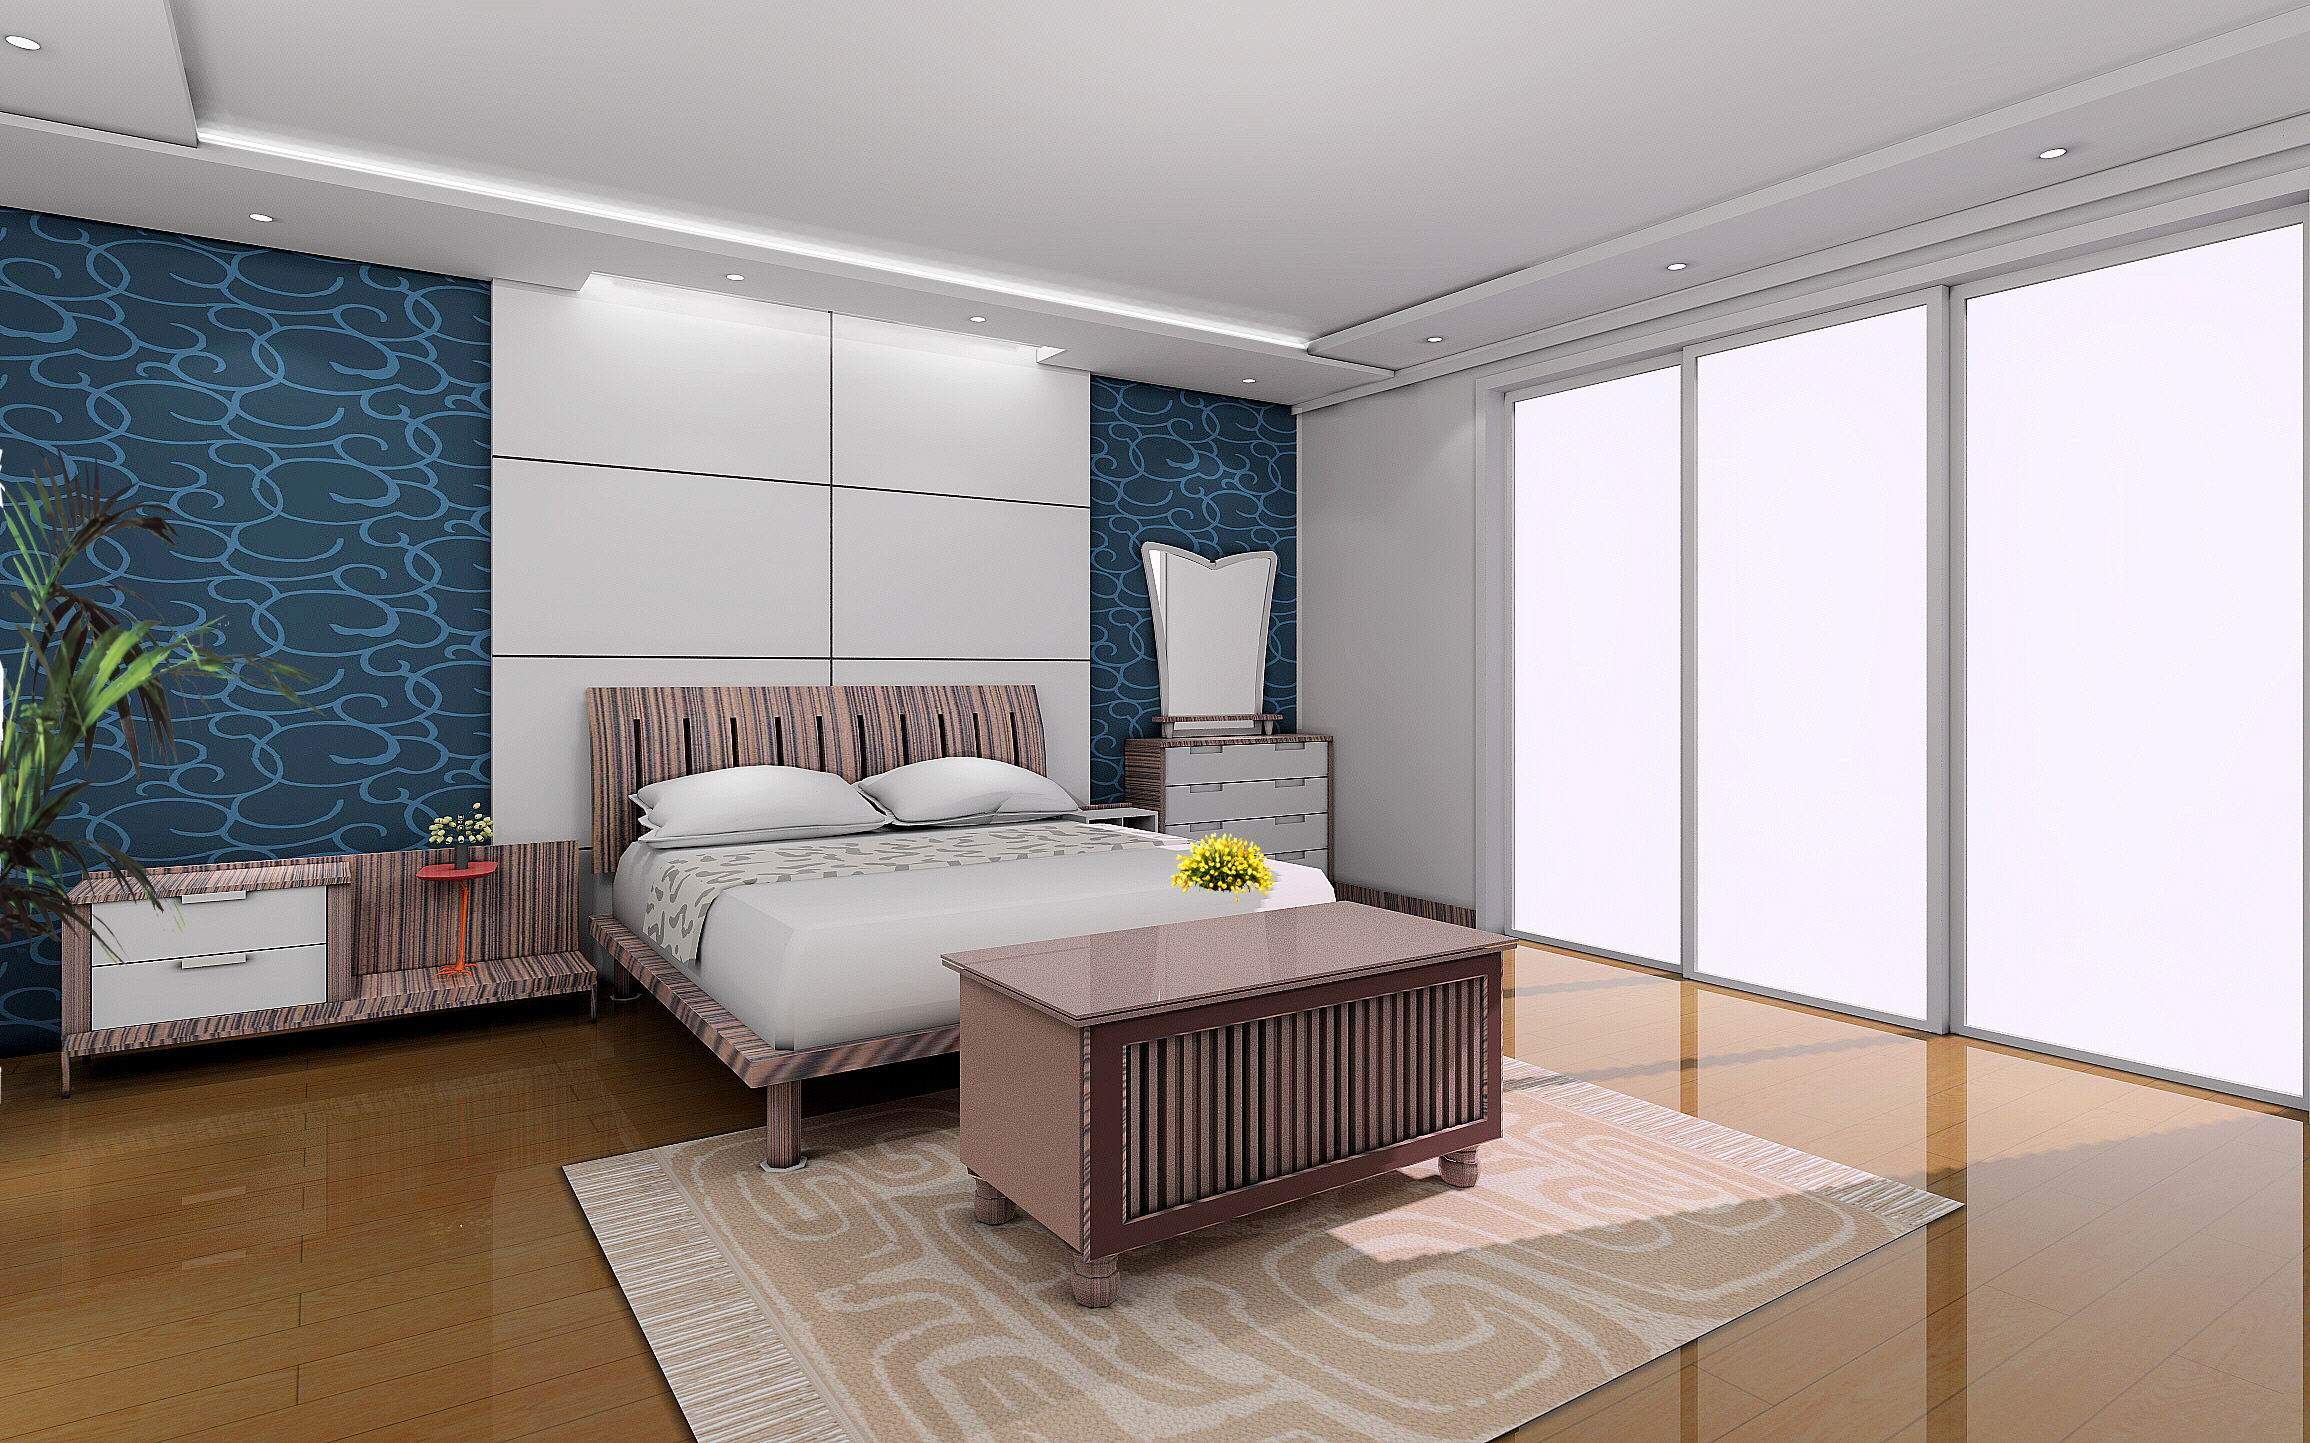 Bedroom Layout Images